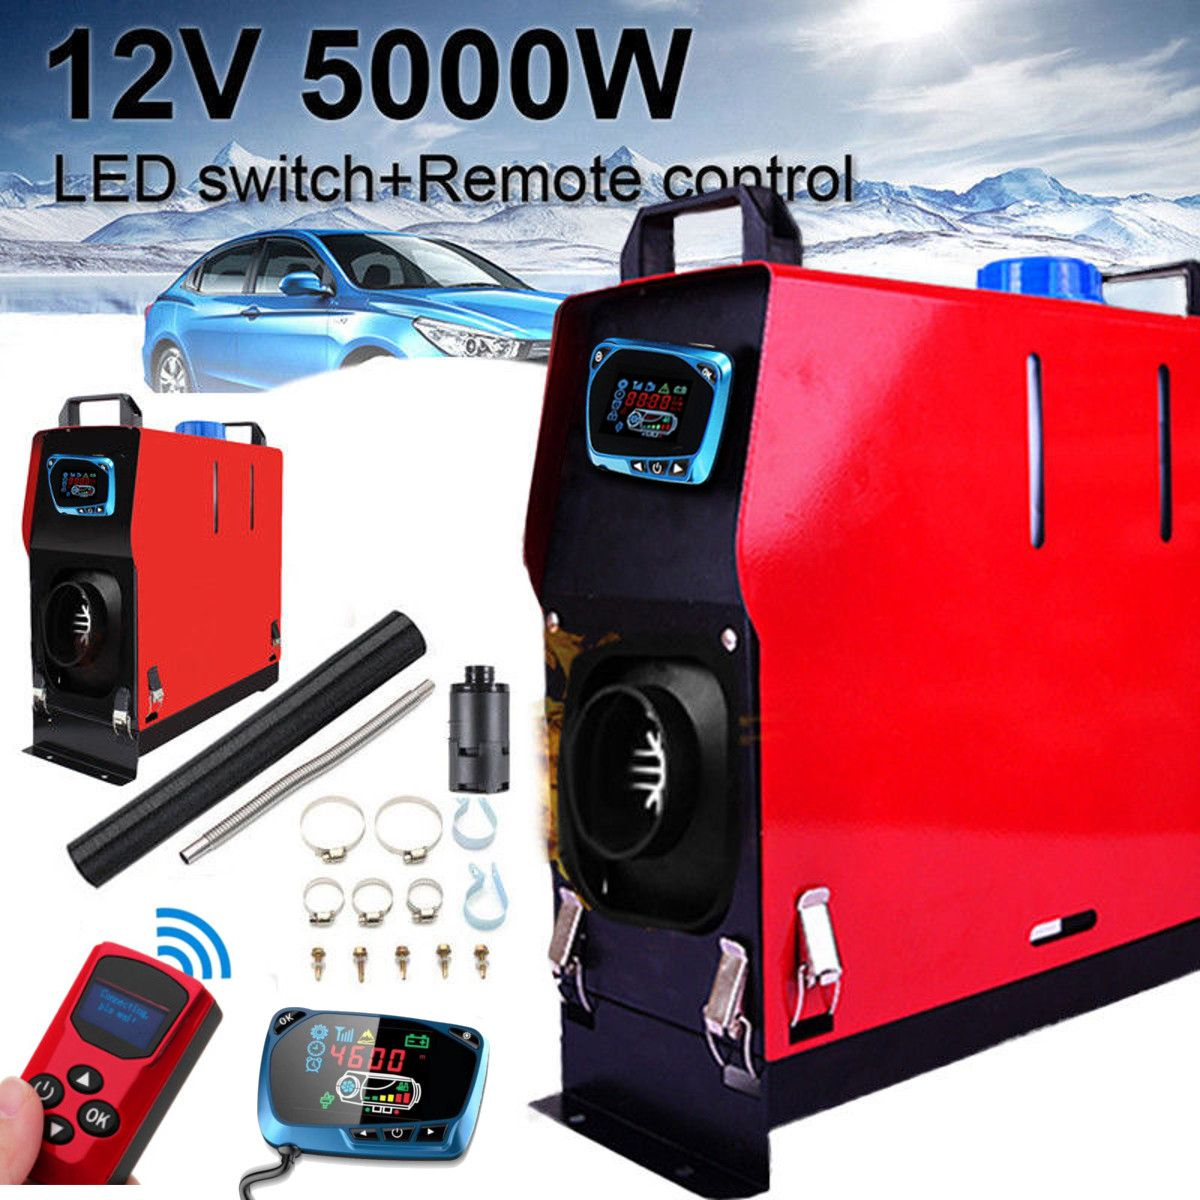 5000W Air diesels Heater 5KW 12V One Hole Car Heater For Trucks Motor-Home Boats Bus +LCD key Switch+ Remote Control